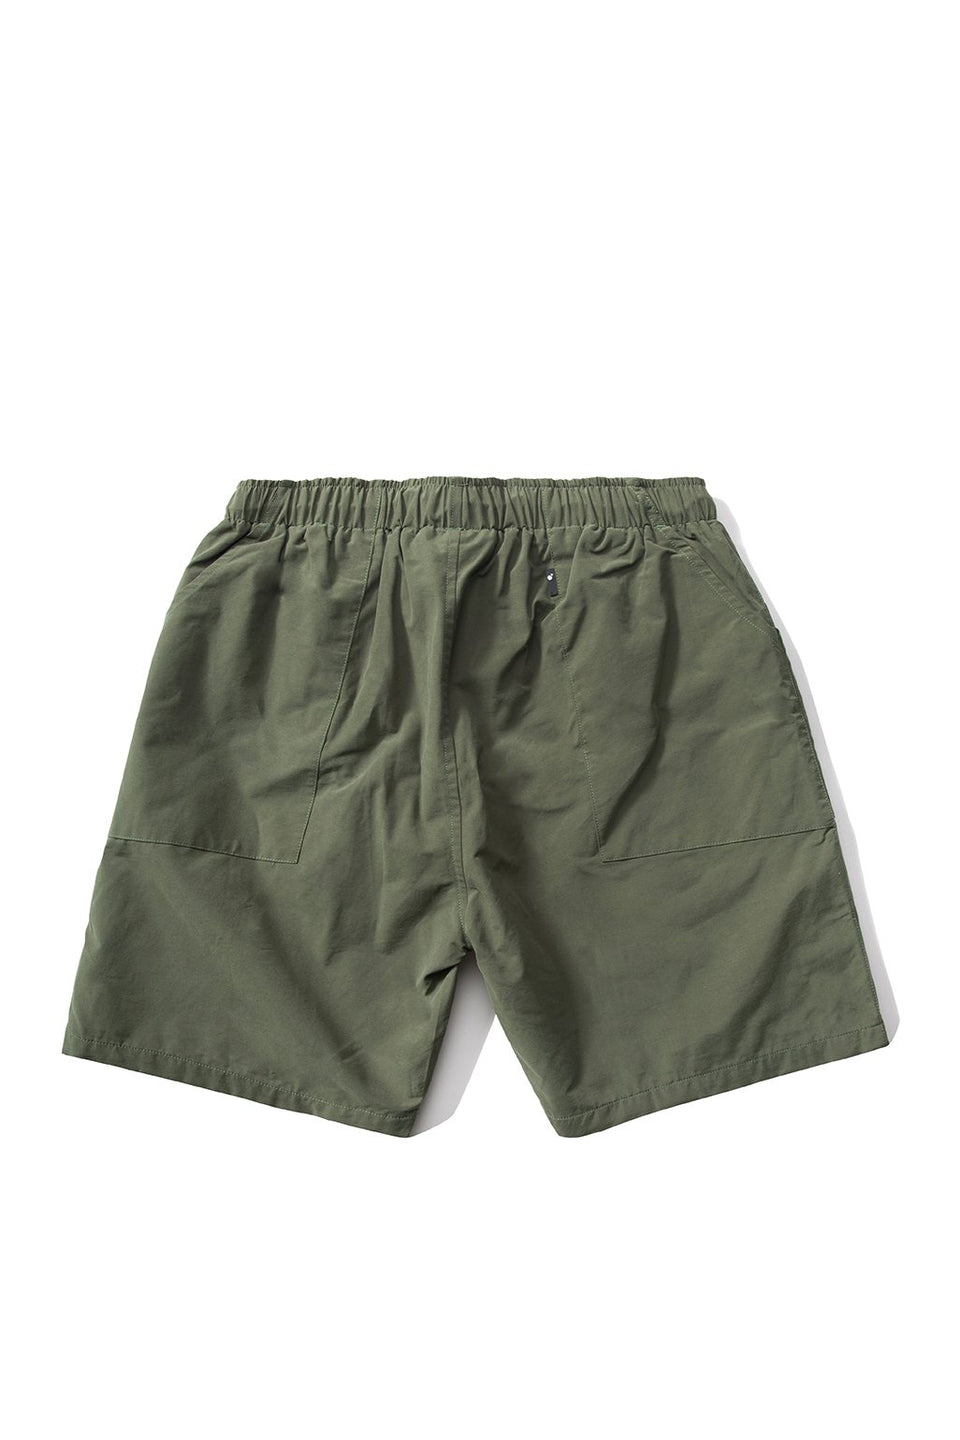 Gaines Shorts